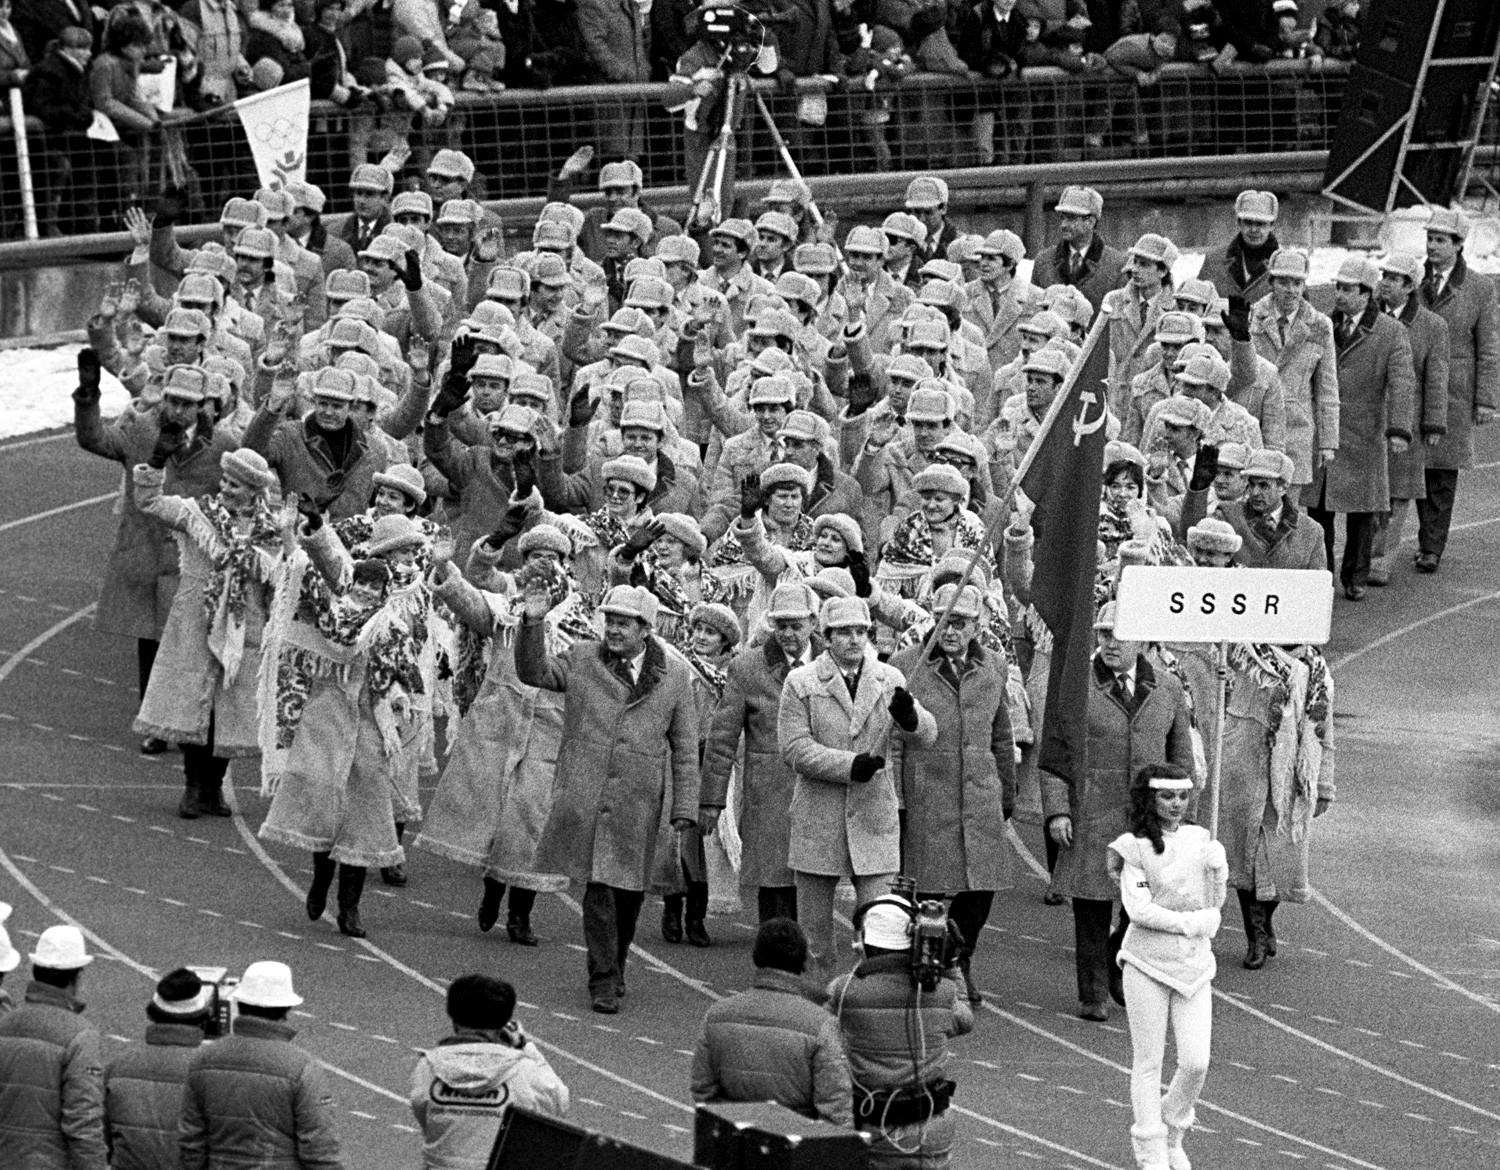 The Soviet team marches during the opening ceremony of the 1984 Winter Olympic Games in Sarajevo